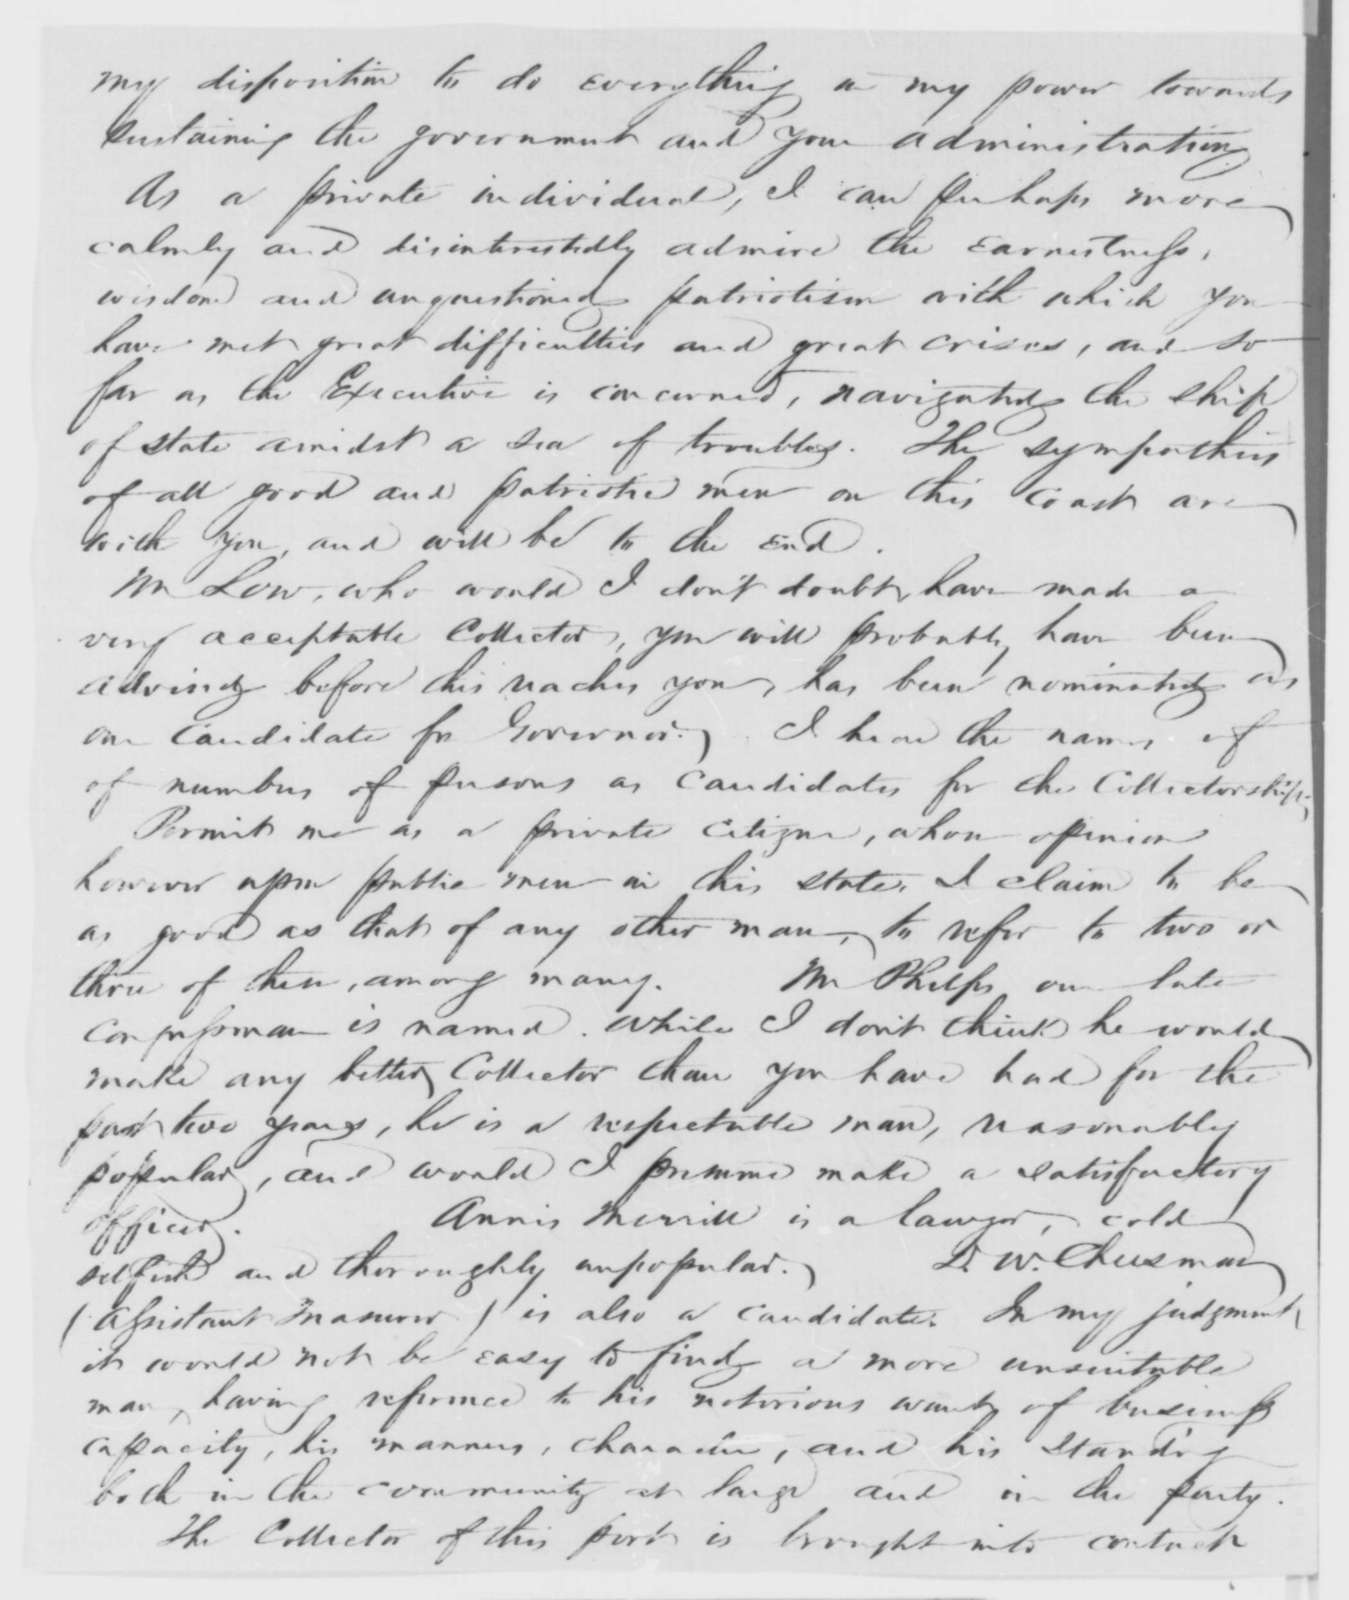 Ira P. Rankin to Abraham Lincoln, Tuesday, June 30, 1863  (Removal from office)